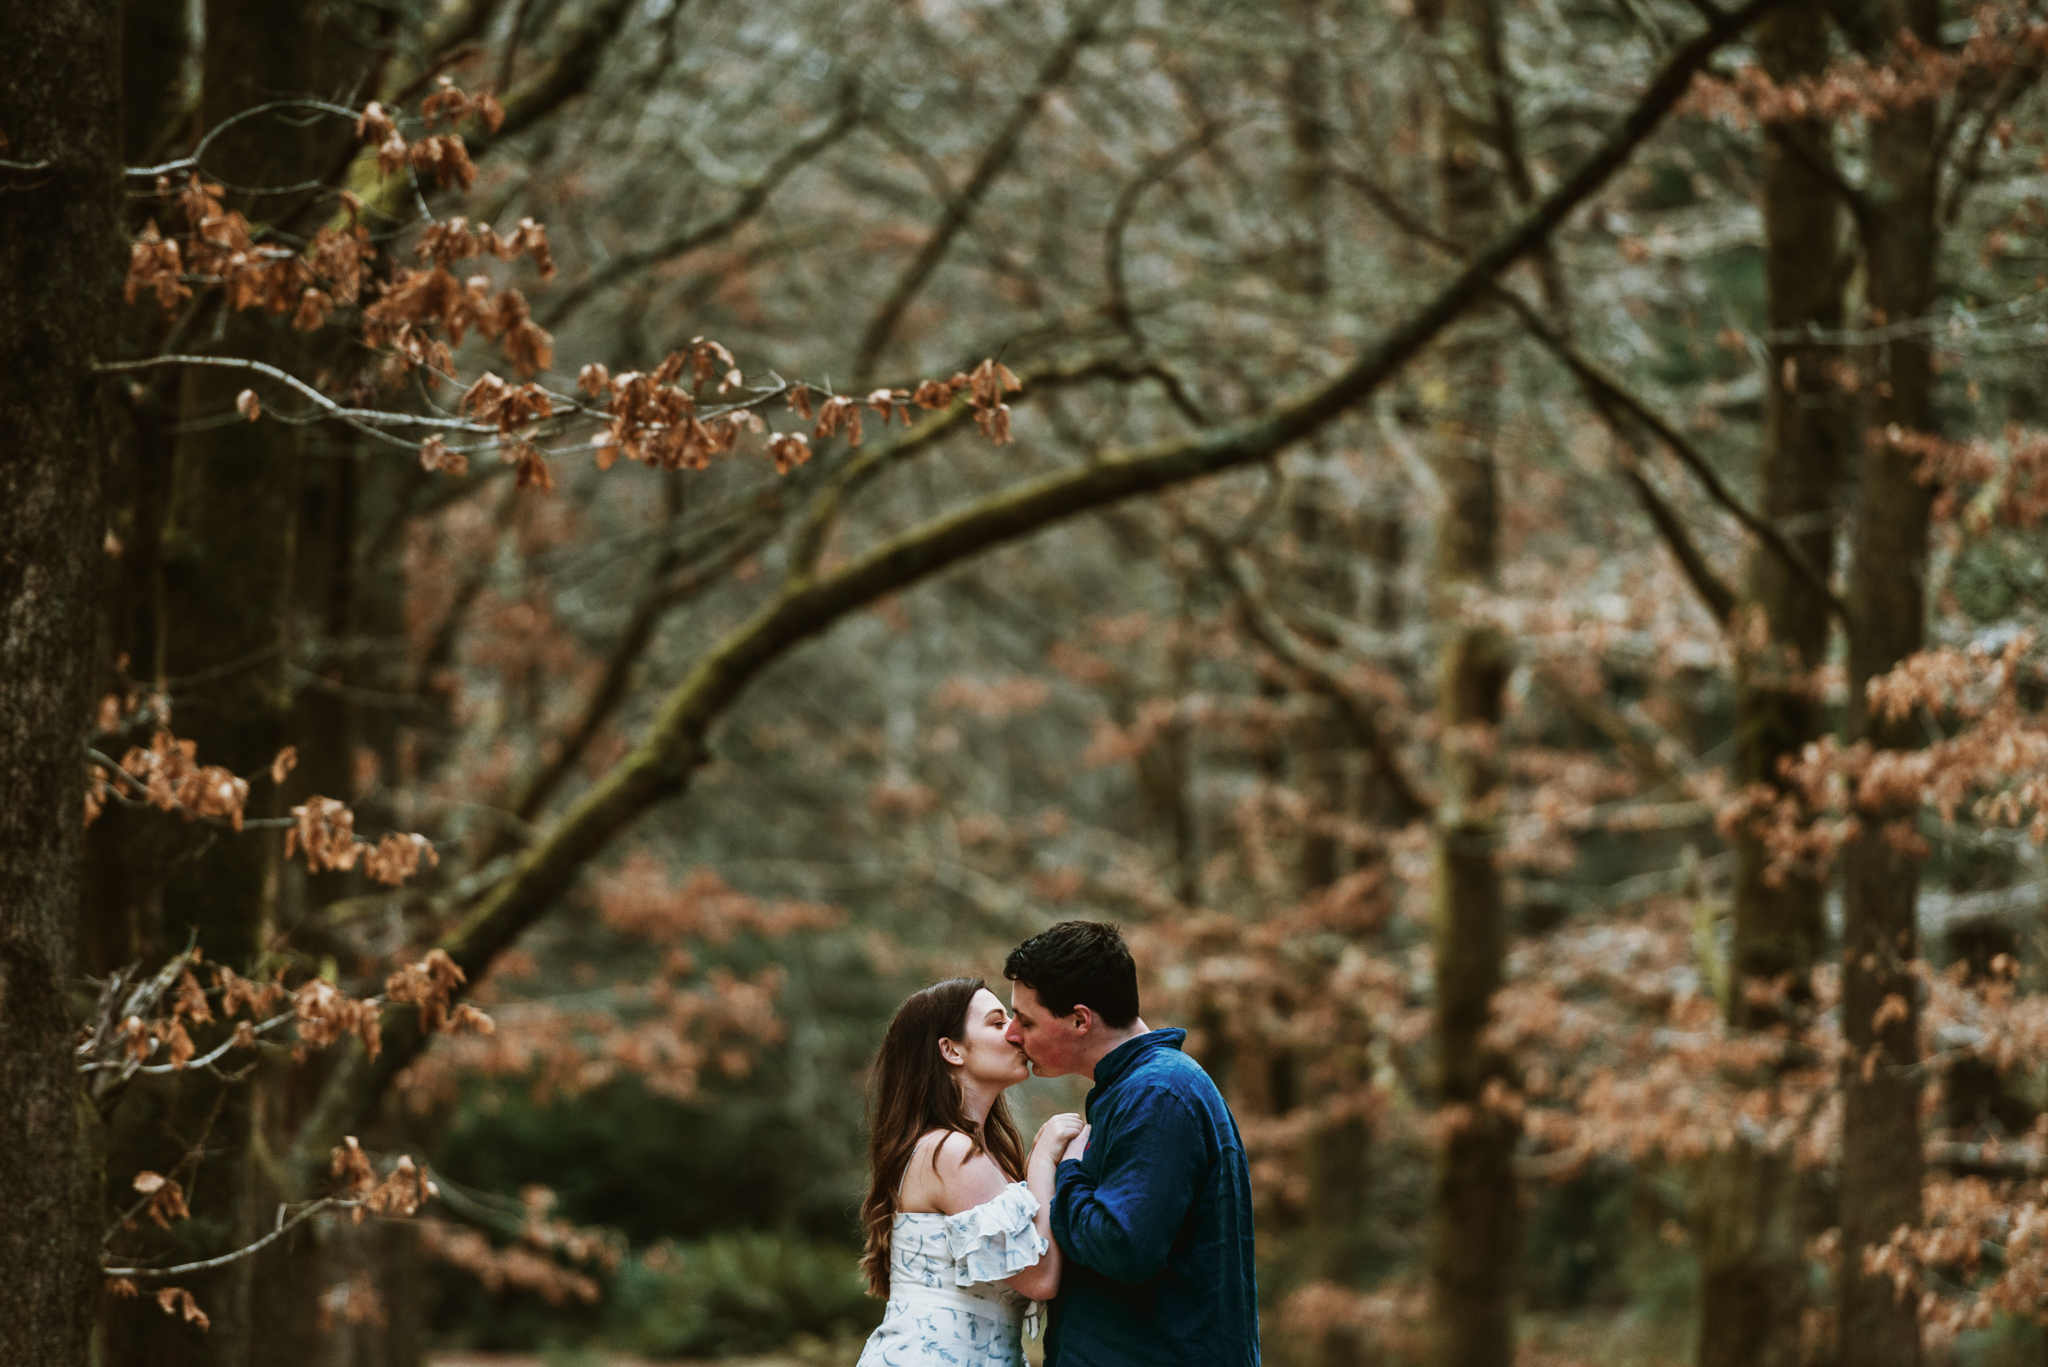 launceston couples photographer-16.jpg